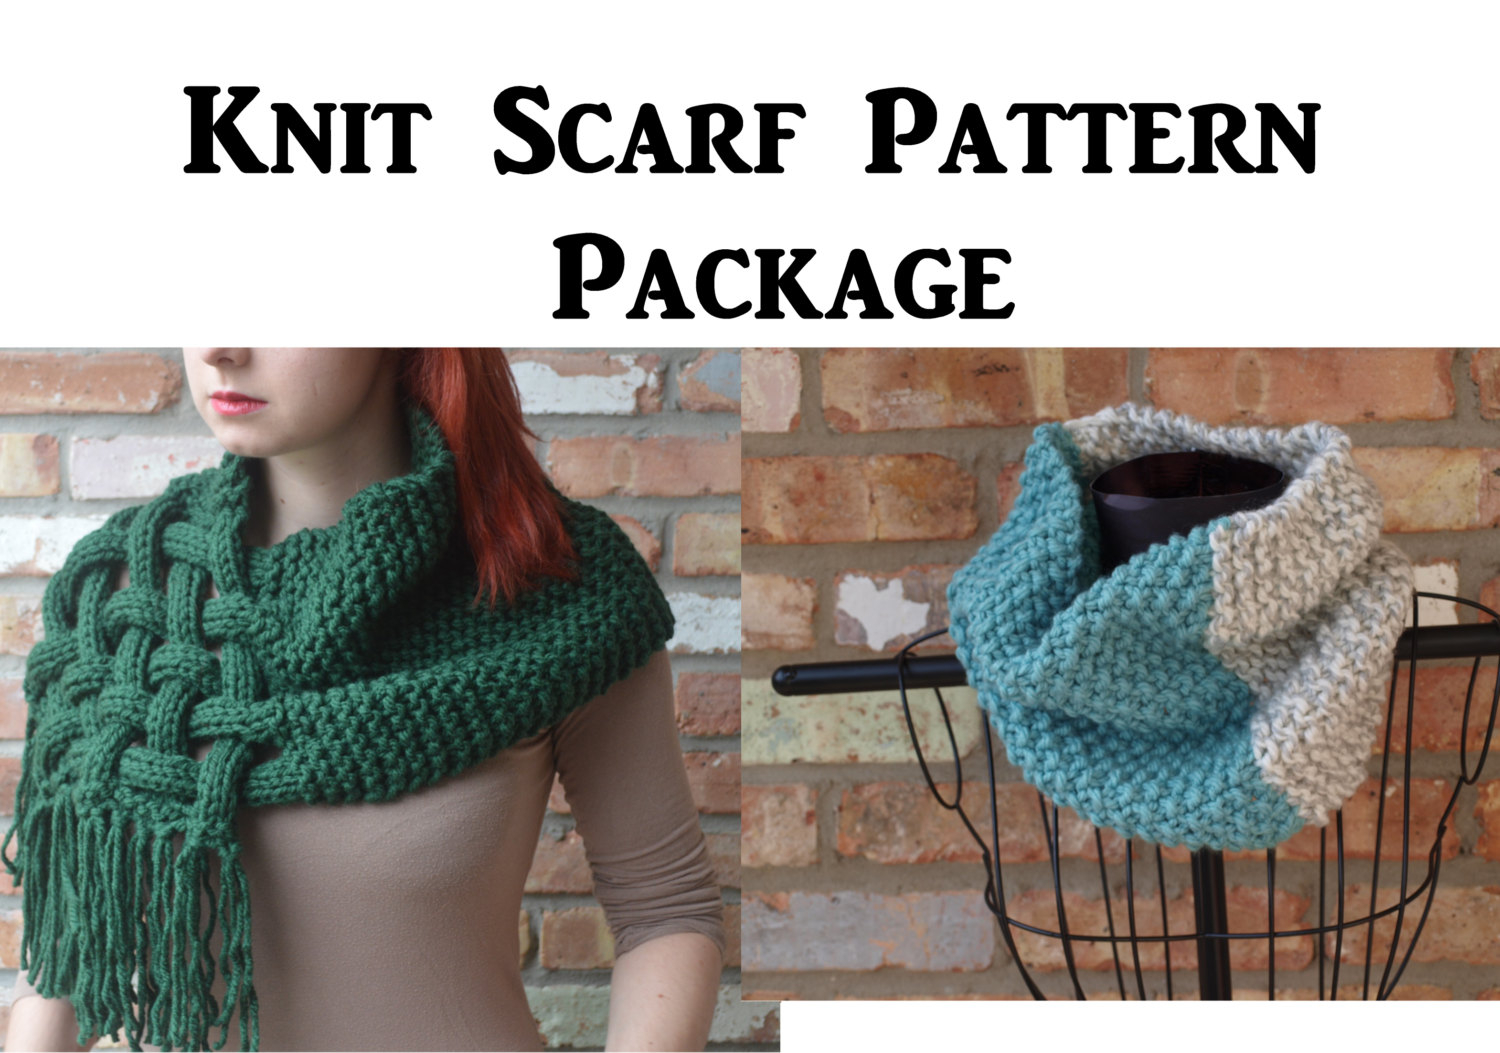 Knit Cowl Scarf Pattern Pattern Sale Knit Cowl Scarf Pattern Package Of 2 Knit Woven Scarf Knit Cowl Scarf Cowl Knitting Pattern Tutorial